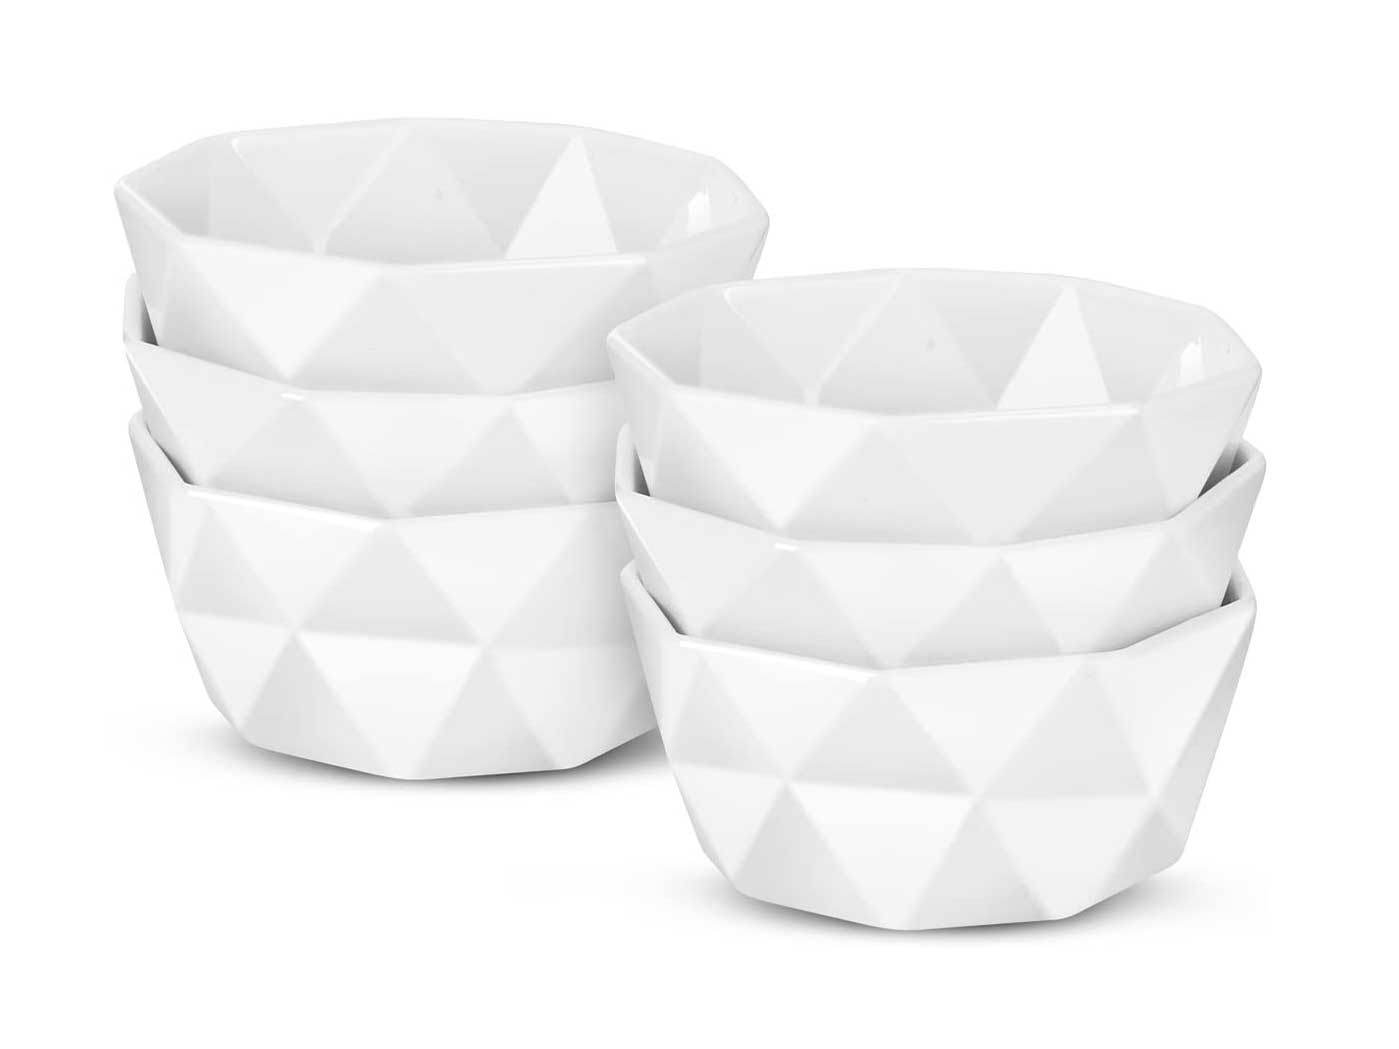 Delling Geometric 8 Oz Porcelain Ramekins/Dessert Bowls,Durable Creme Brulee Dishes Ramekin for Baking, Dessert, Ice Cream, Snack, Souffle - Ramekins Oven Safe -White Ceramic Small Bowl Set of 6